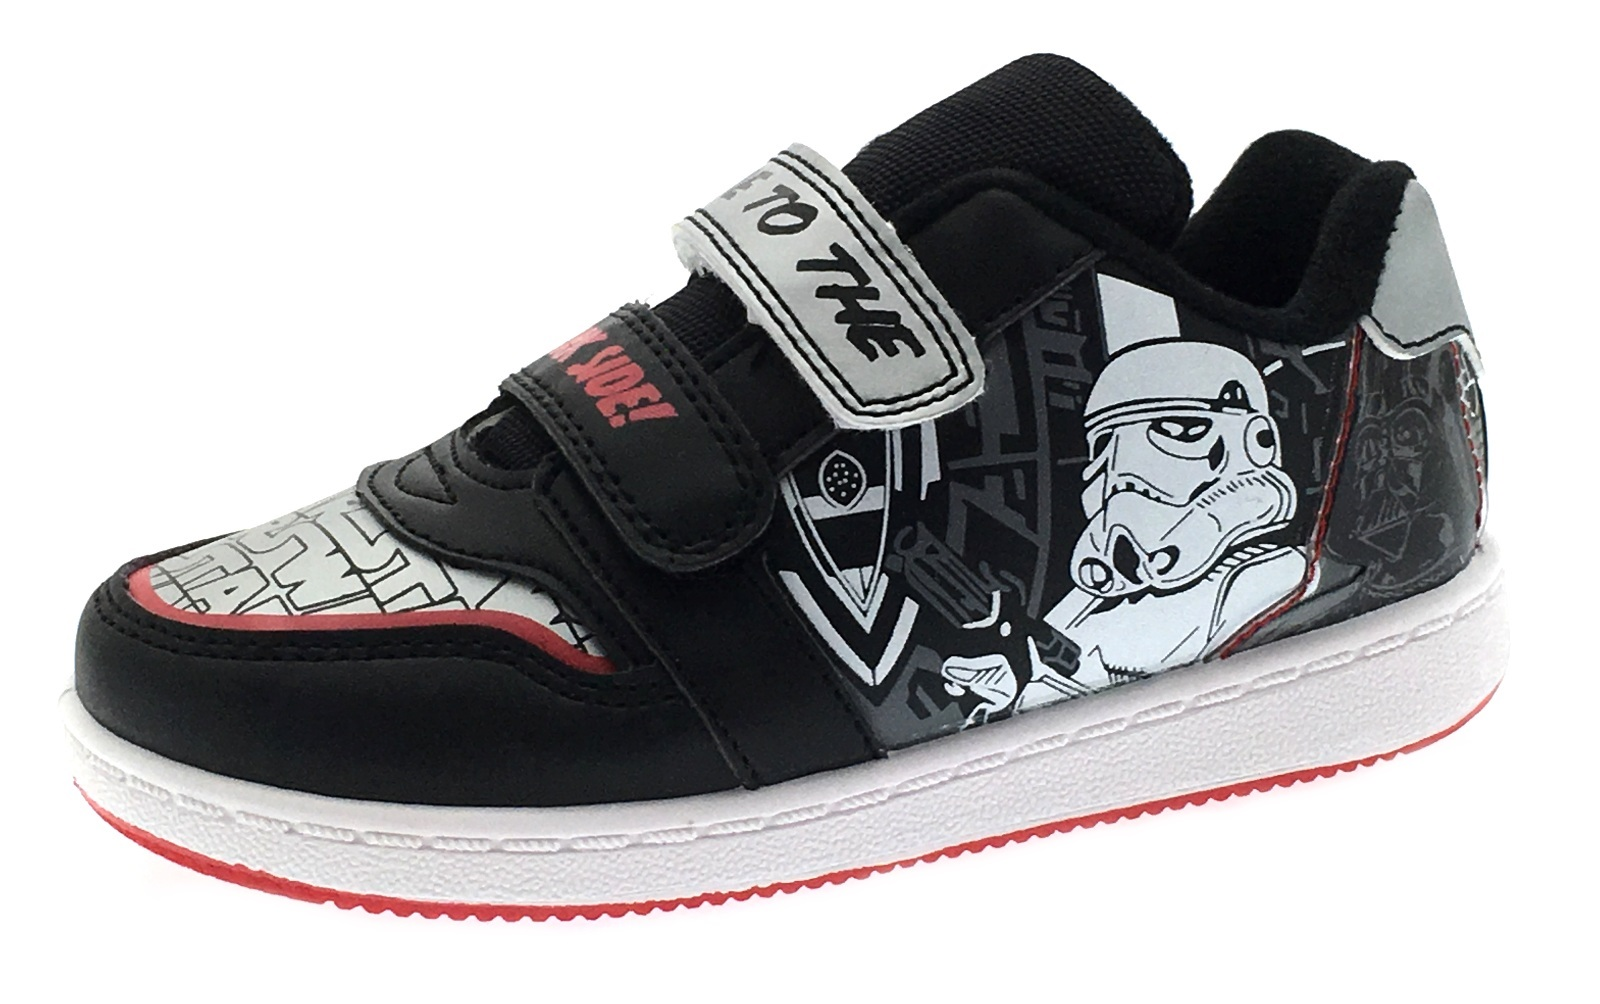 5dec0e0a6a99c Details about Boys Disney Star Wars Sports Trainers Flat Skate Shoes  Character Pumps Size